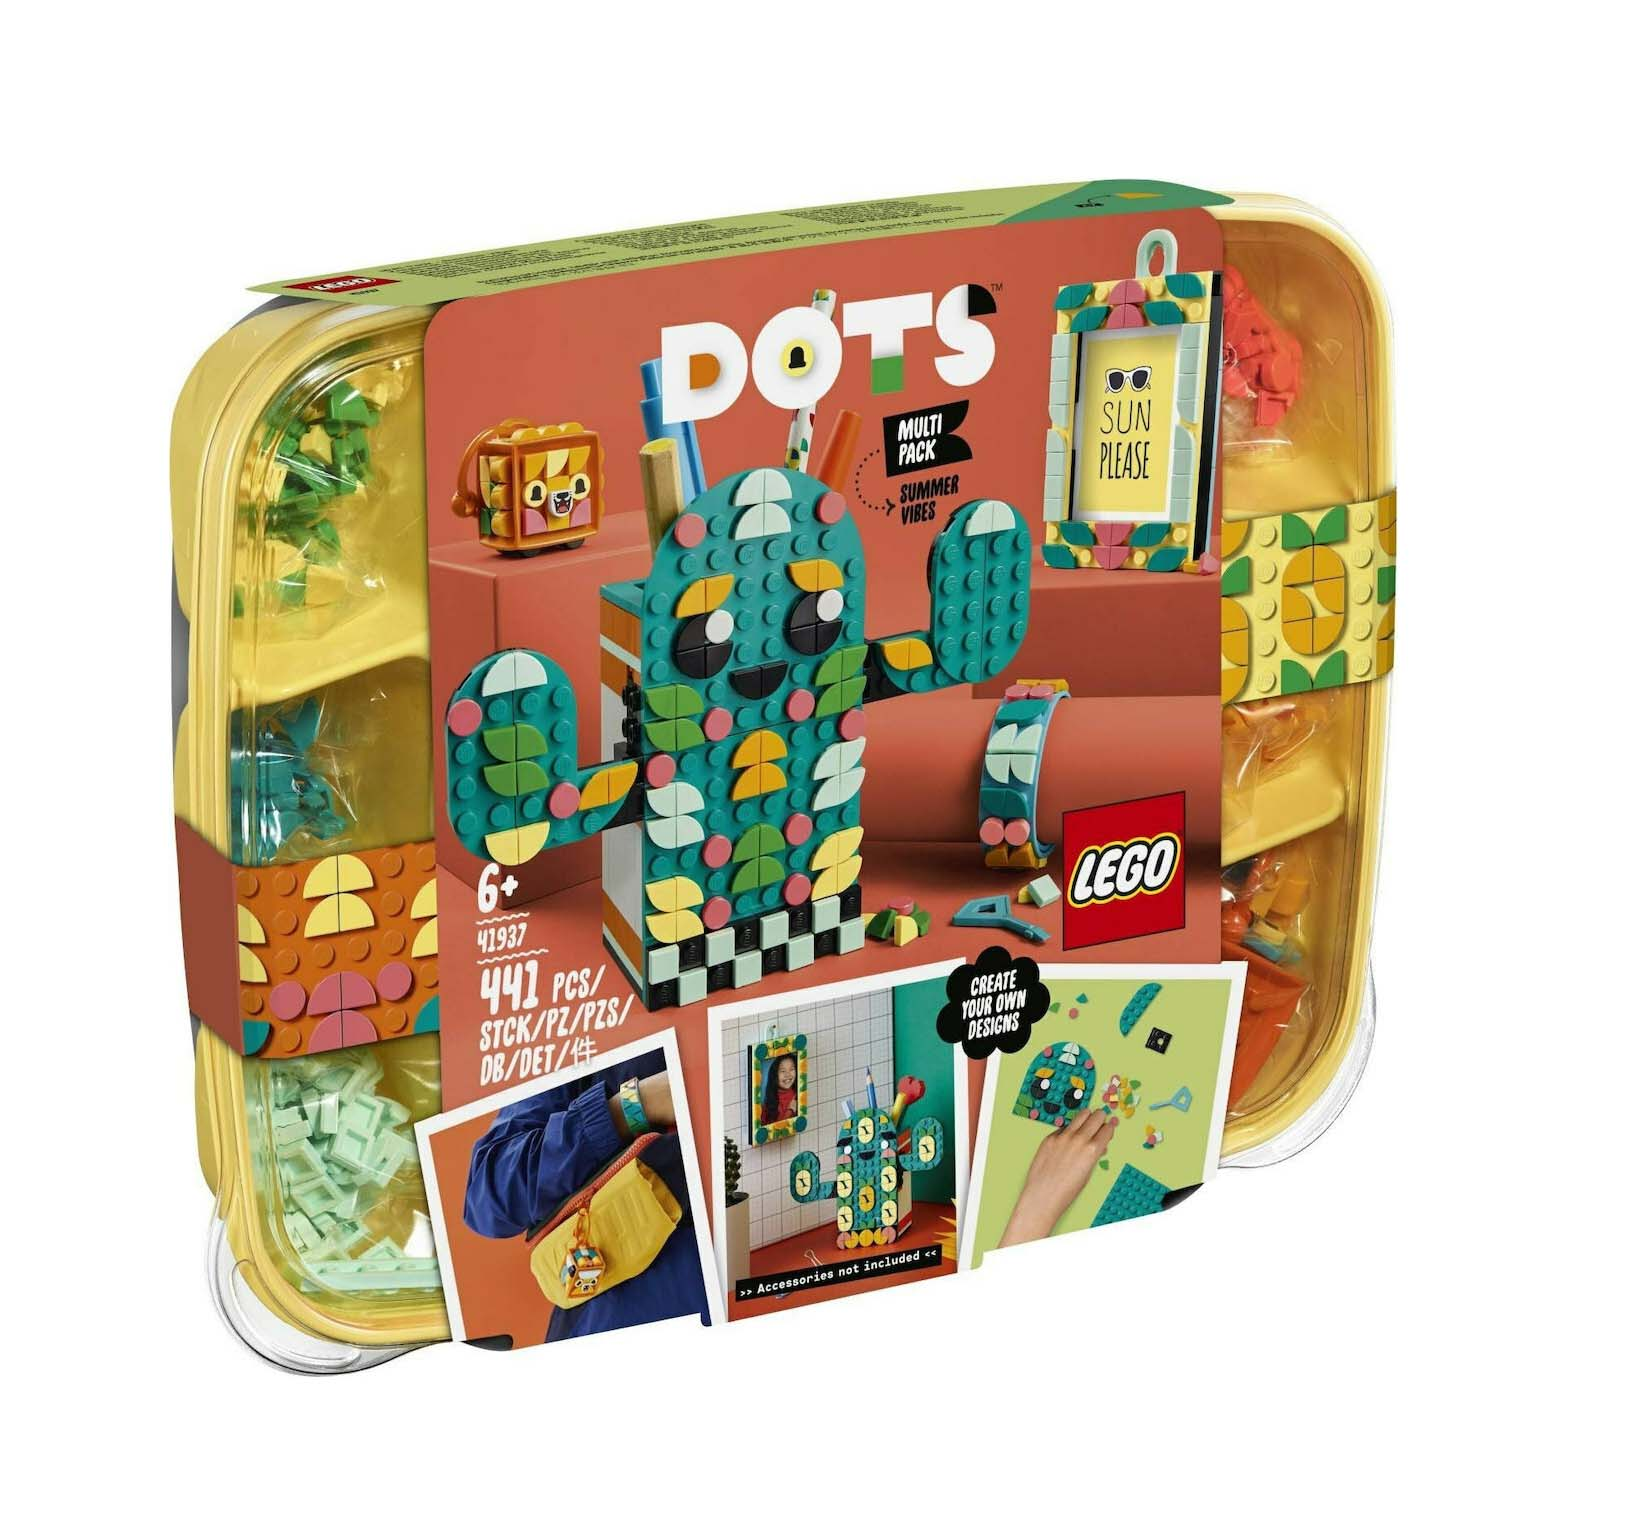 Lego Dots: Multi Pack Summer Vibes 41937